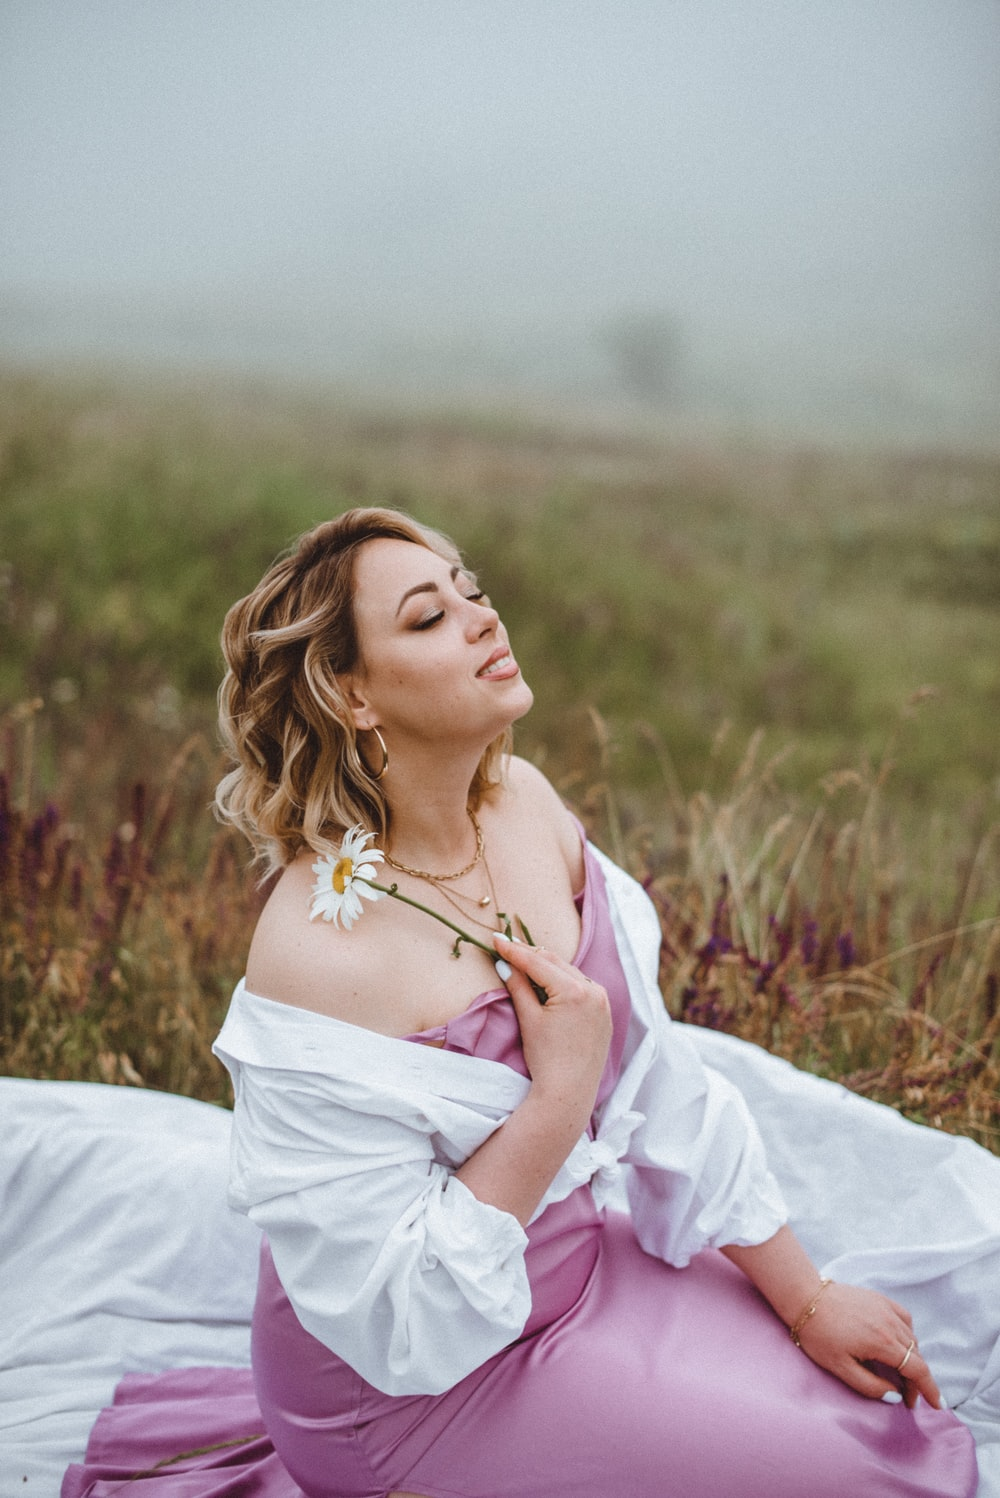 woman in white dress lying on grass field during daytime